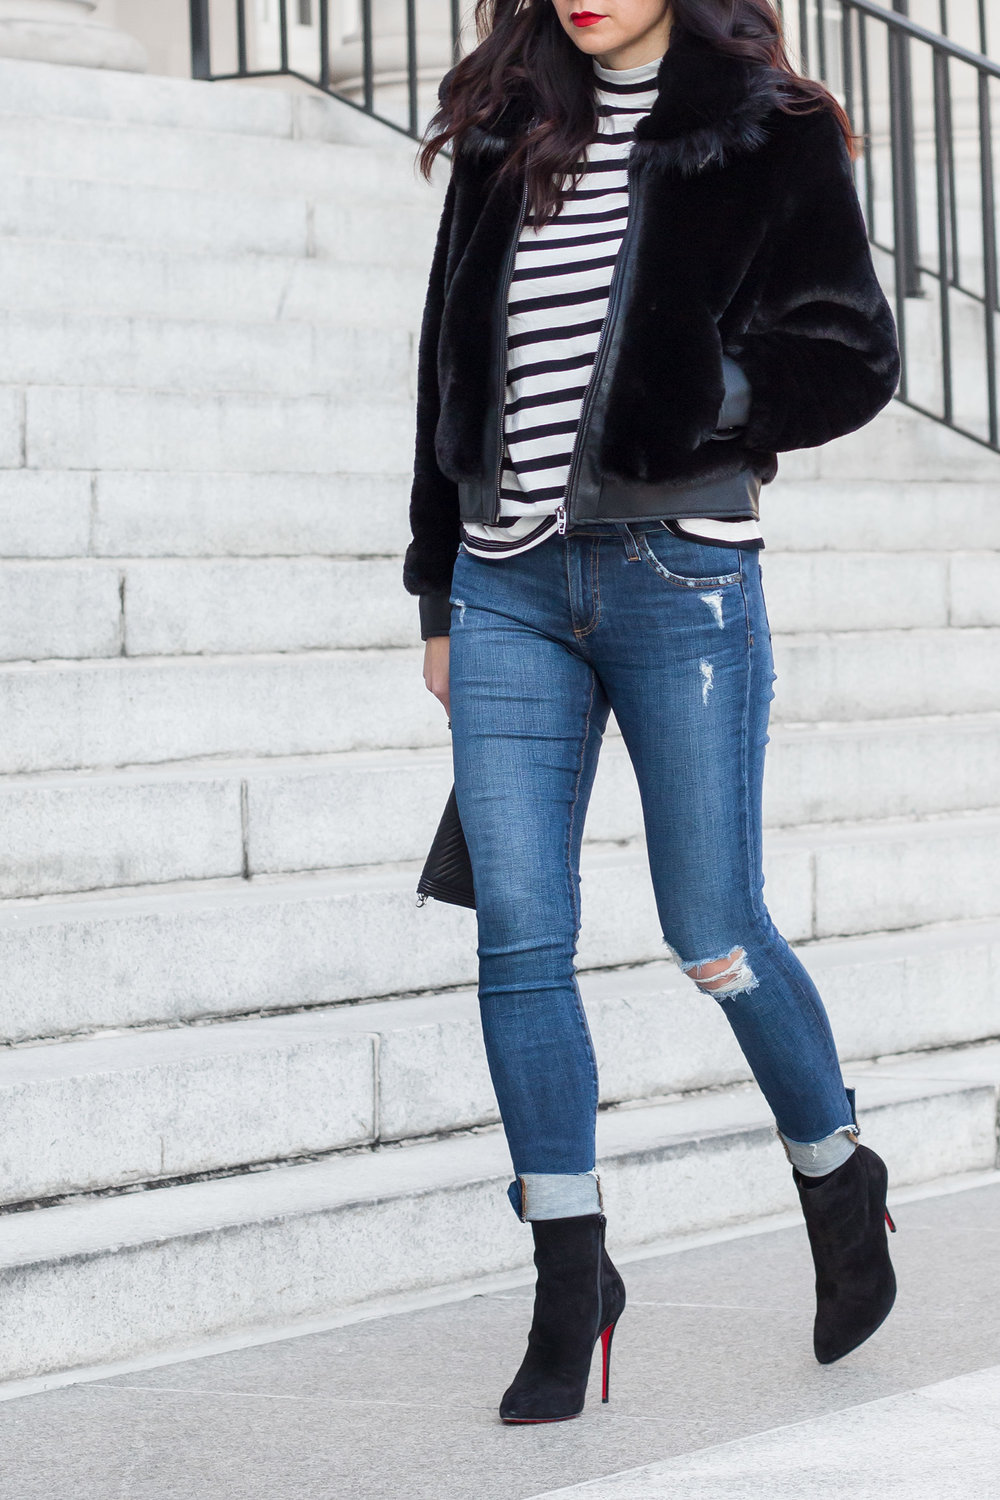 Blank NYC Faux Fur Jacket, Christian Louboutin Eloise Boots, Date Night Outfit